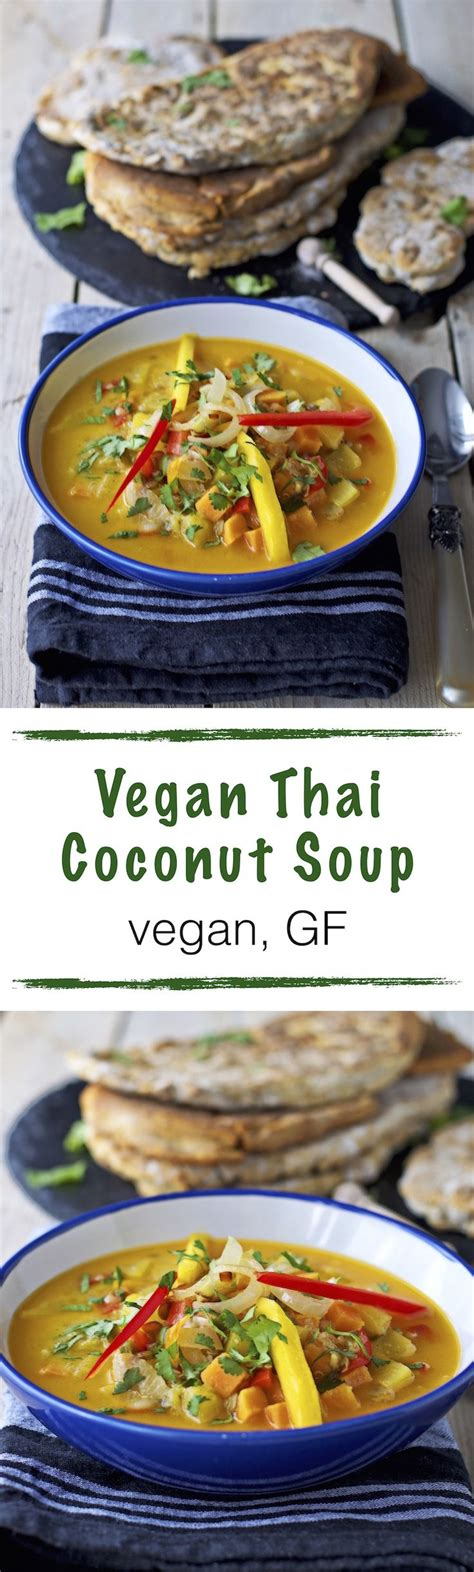 thai coconut soup vegetarian recipe this vegan thai coconut soup comes with an easy naan bread